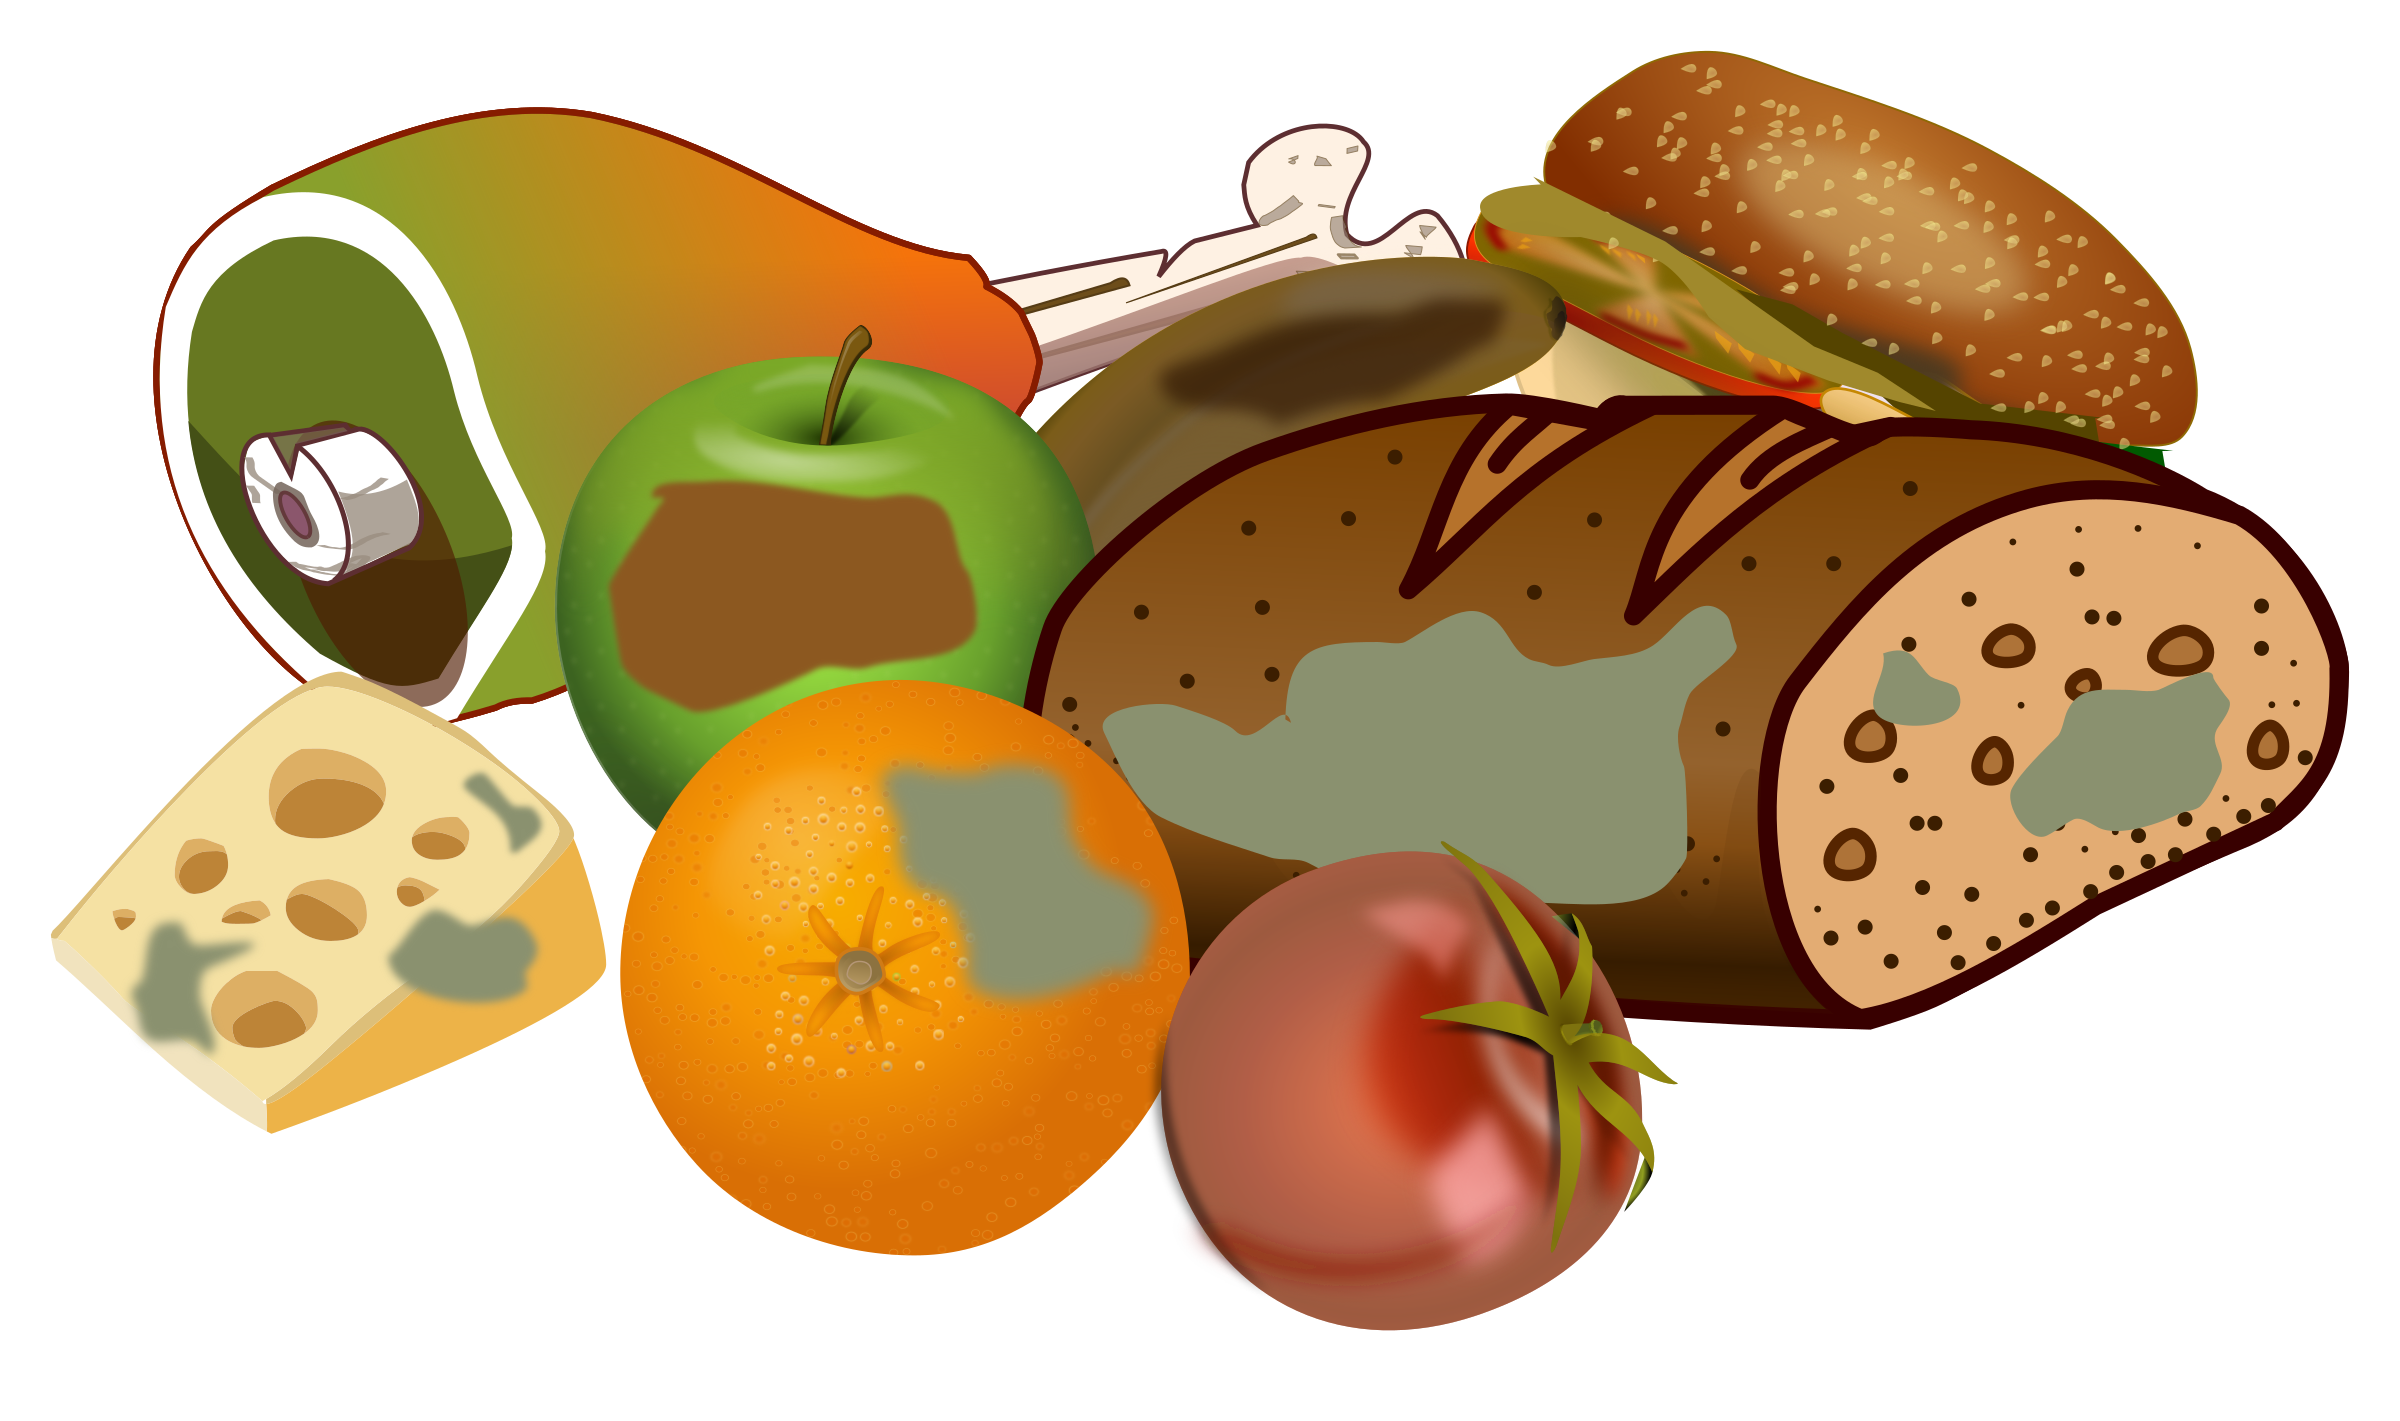 Decay clipart rotten food Clipart food Wasting Wasting food